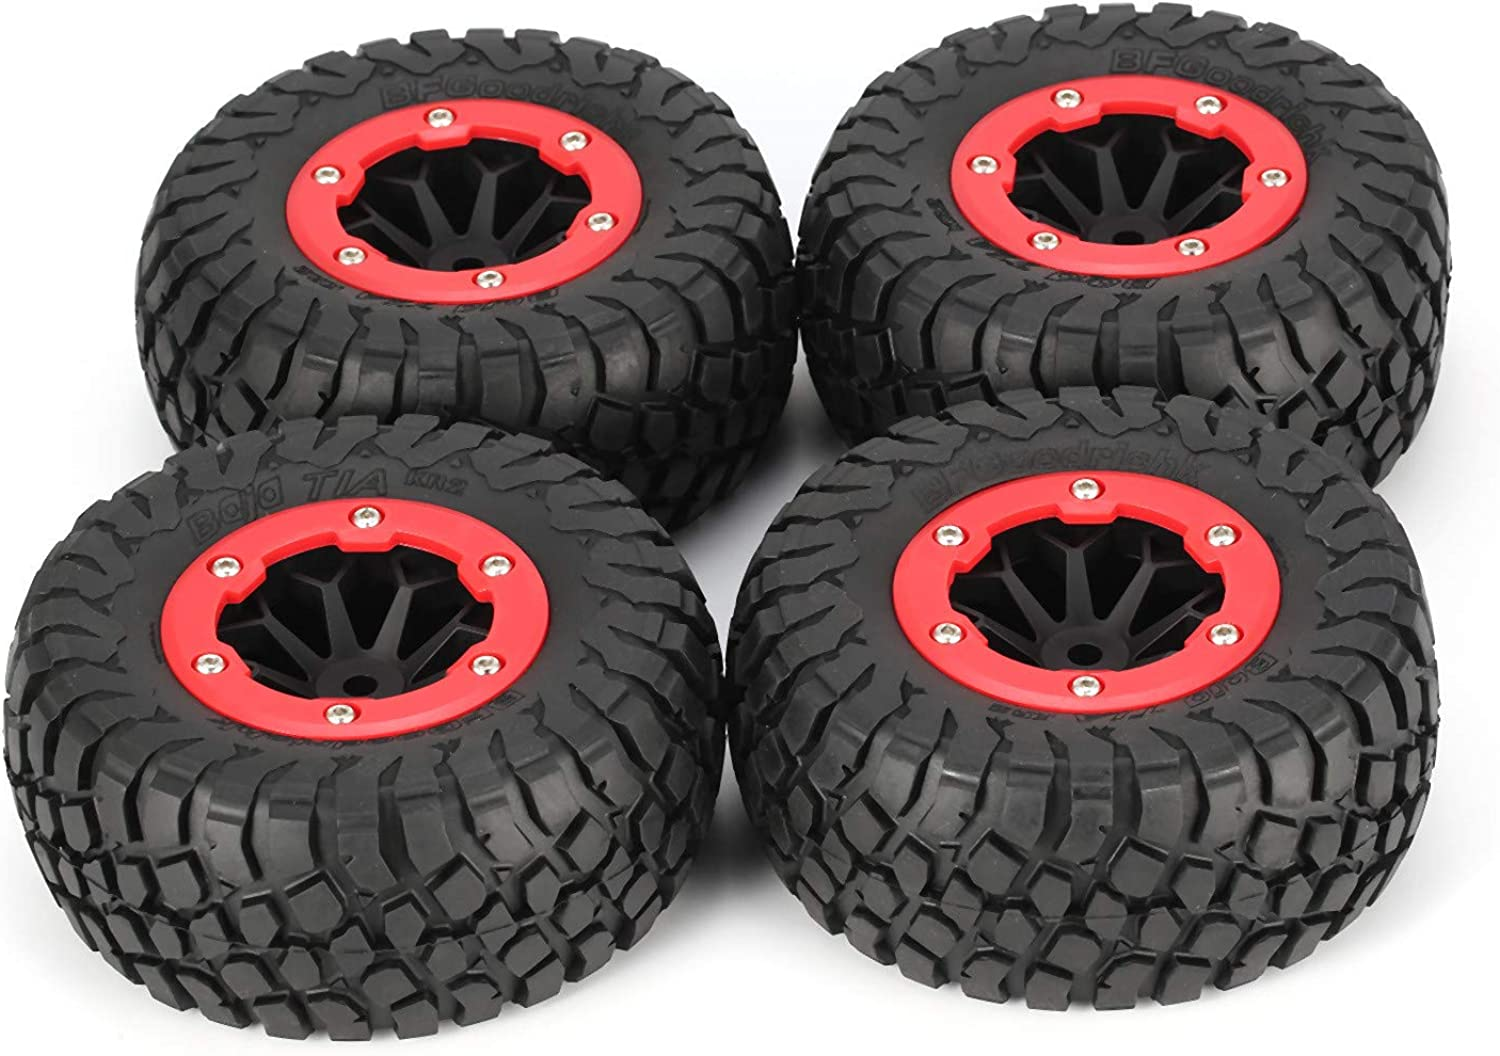 4Pcs AUSTAR AX4007 113mm Short Truck Tyre for 1 10 OffRoad Truck Crawler Racing RC Car Model Spare Parts Accessories